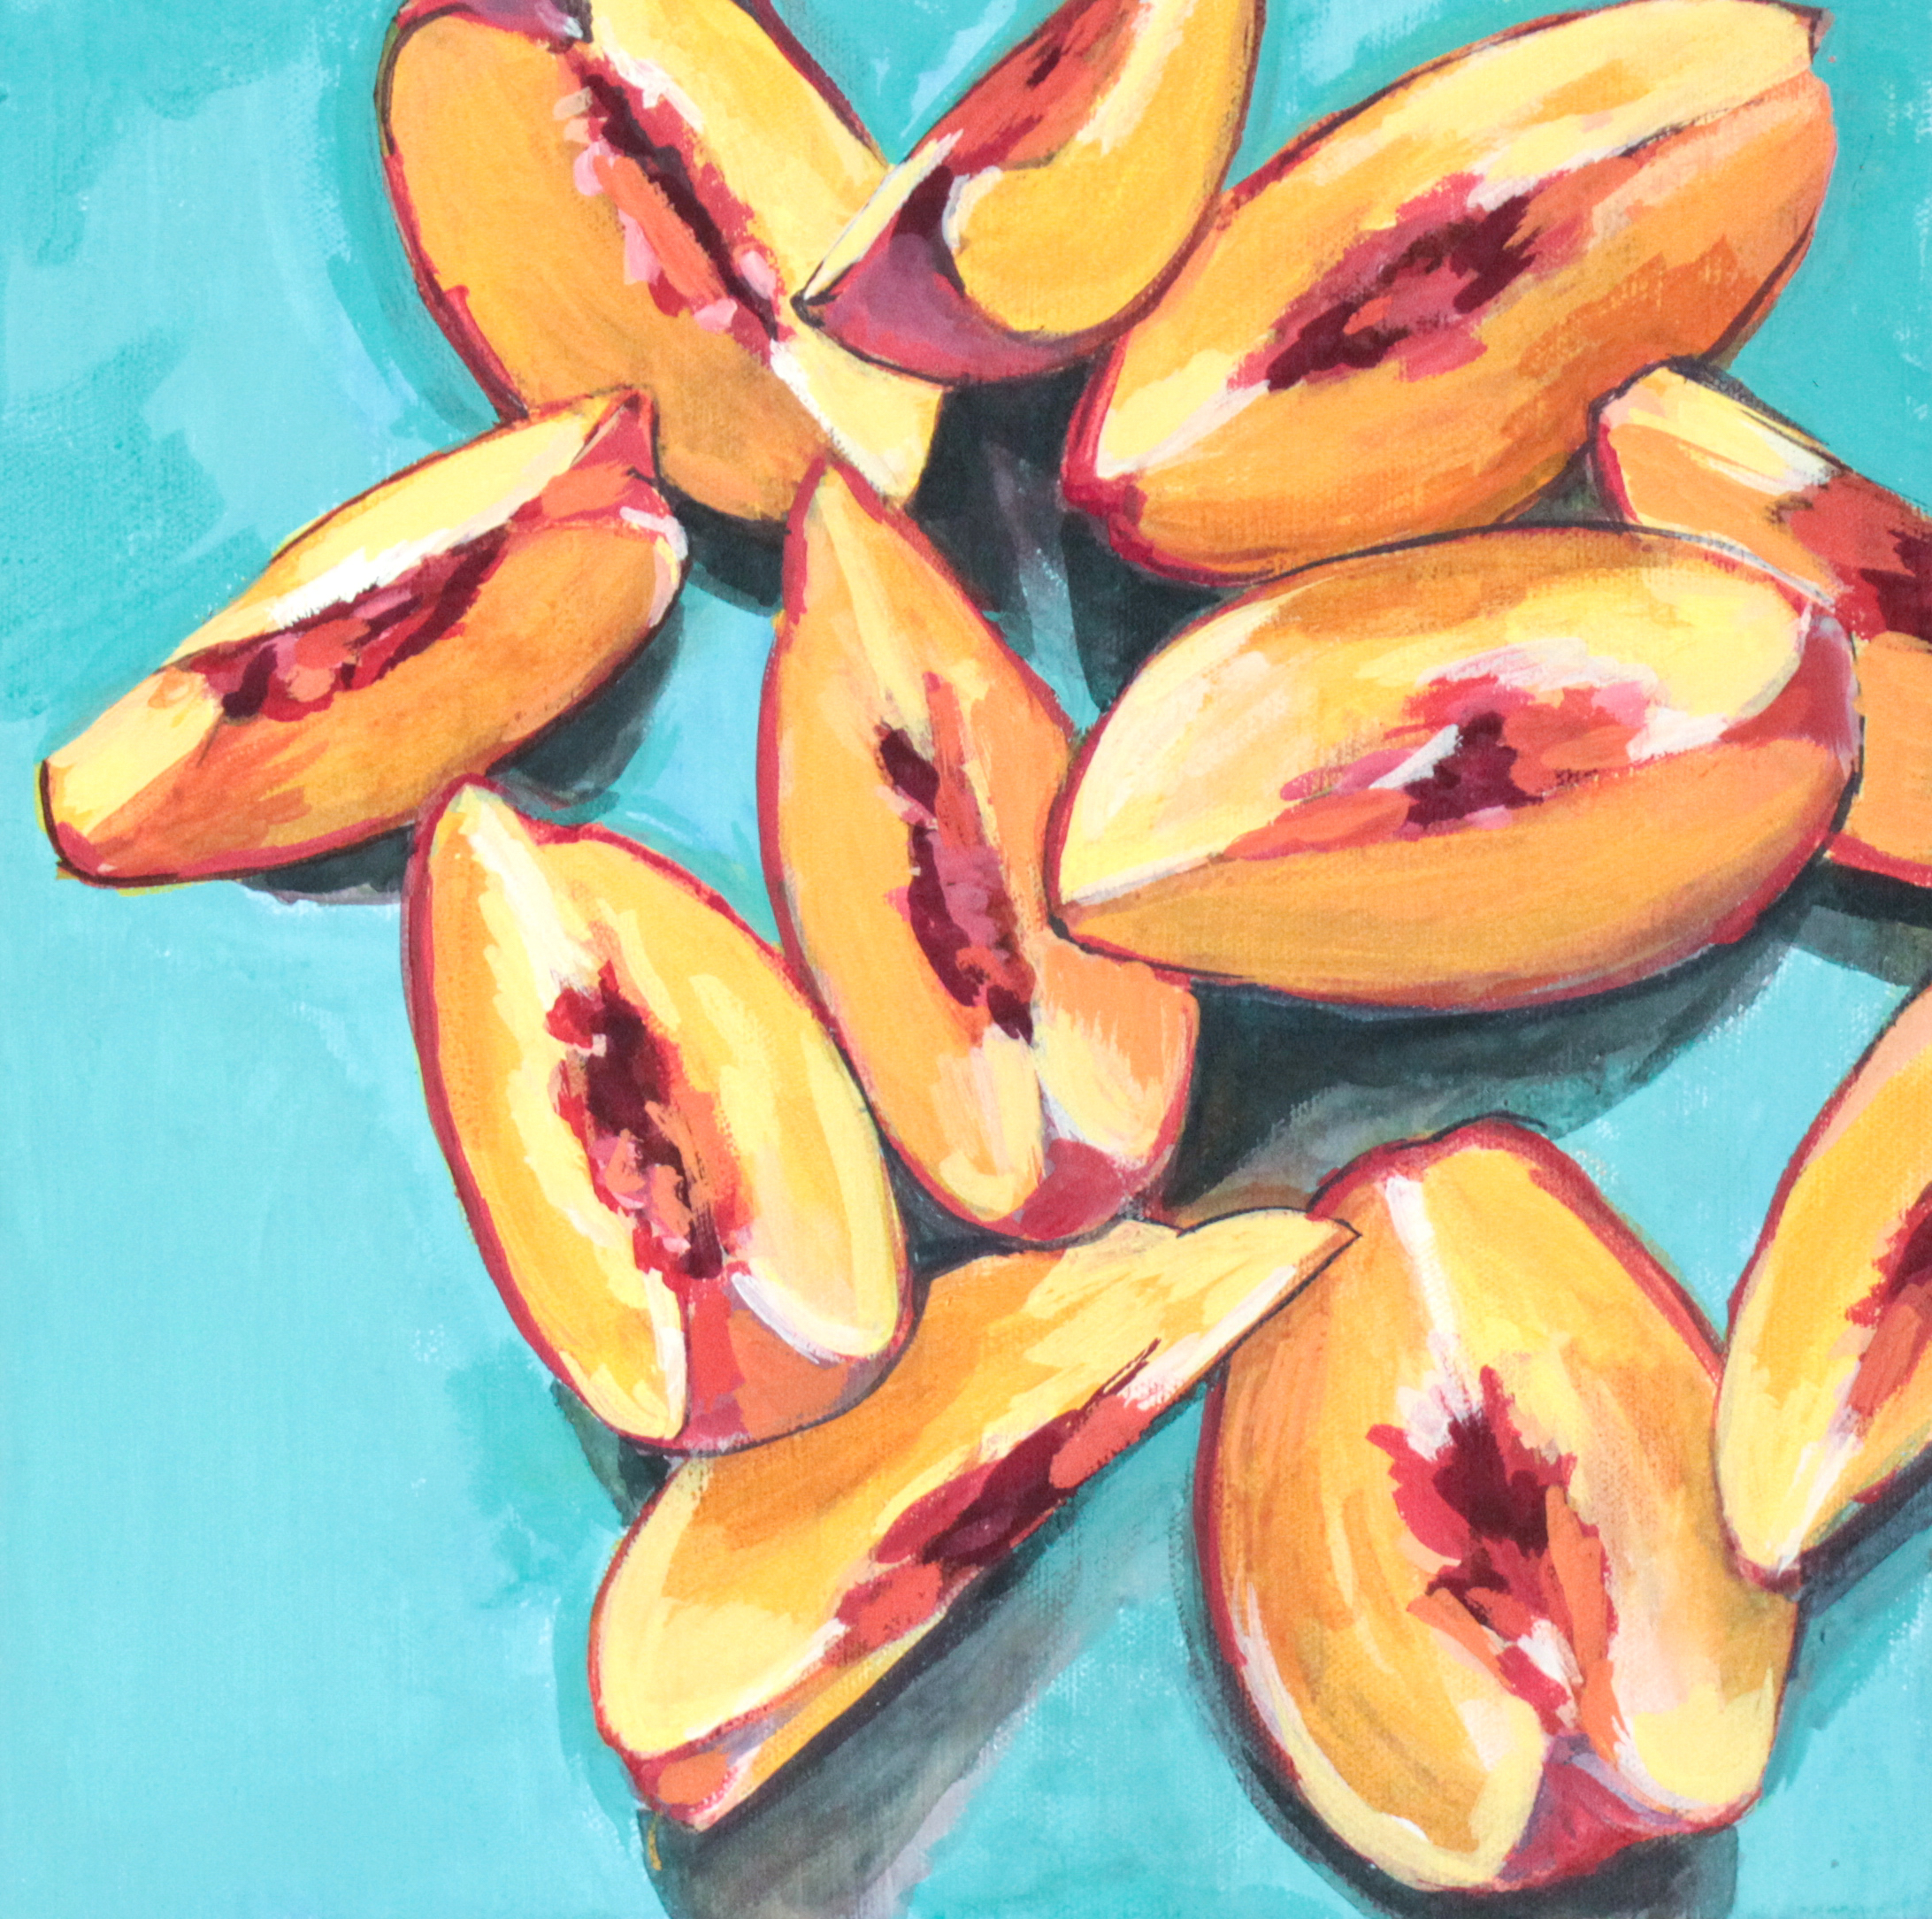 "Last Slices of Summer - 12"" x 12"" gouache on canvas, framedSOLDInspired by the Peach Slices from Seeds of Hope @ the James Island Farmers Market"